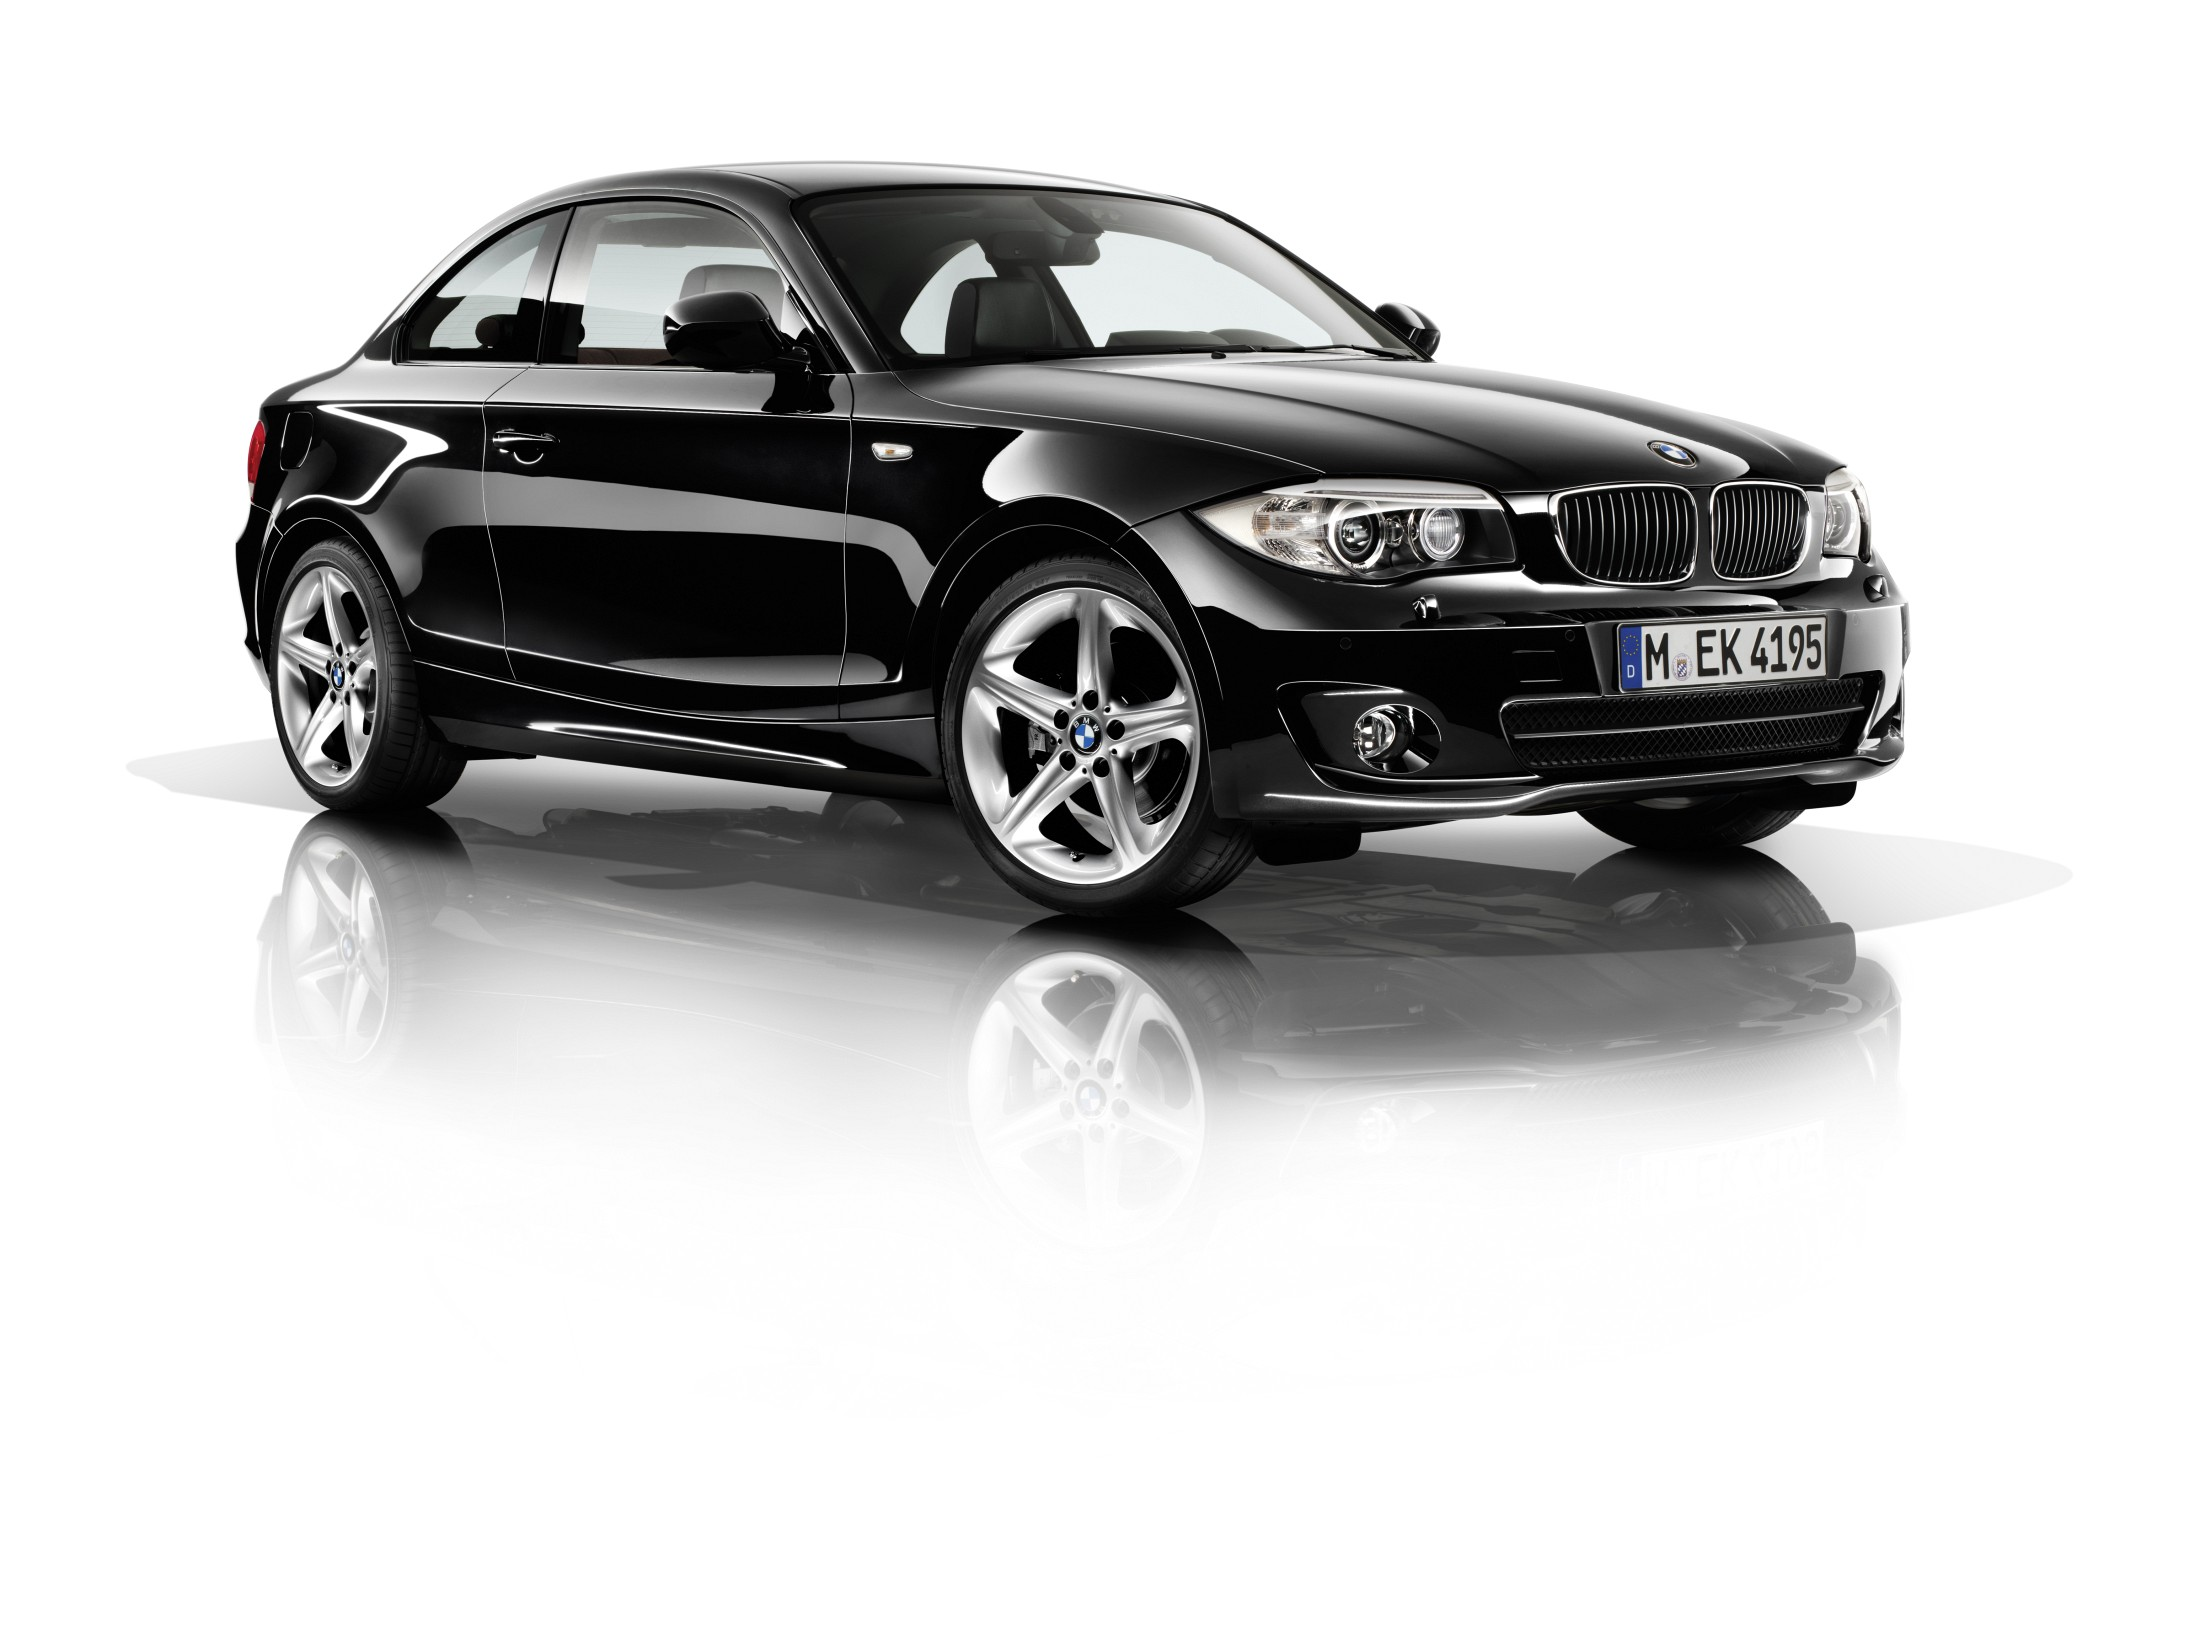 new and used bmw 1 series prices photos reviews specs the car connection. Black Bedroom Furniture Sets. Home Design Ideas